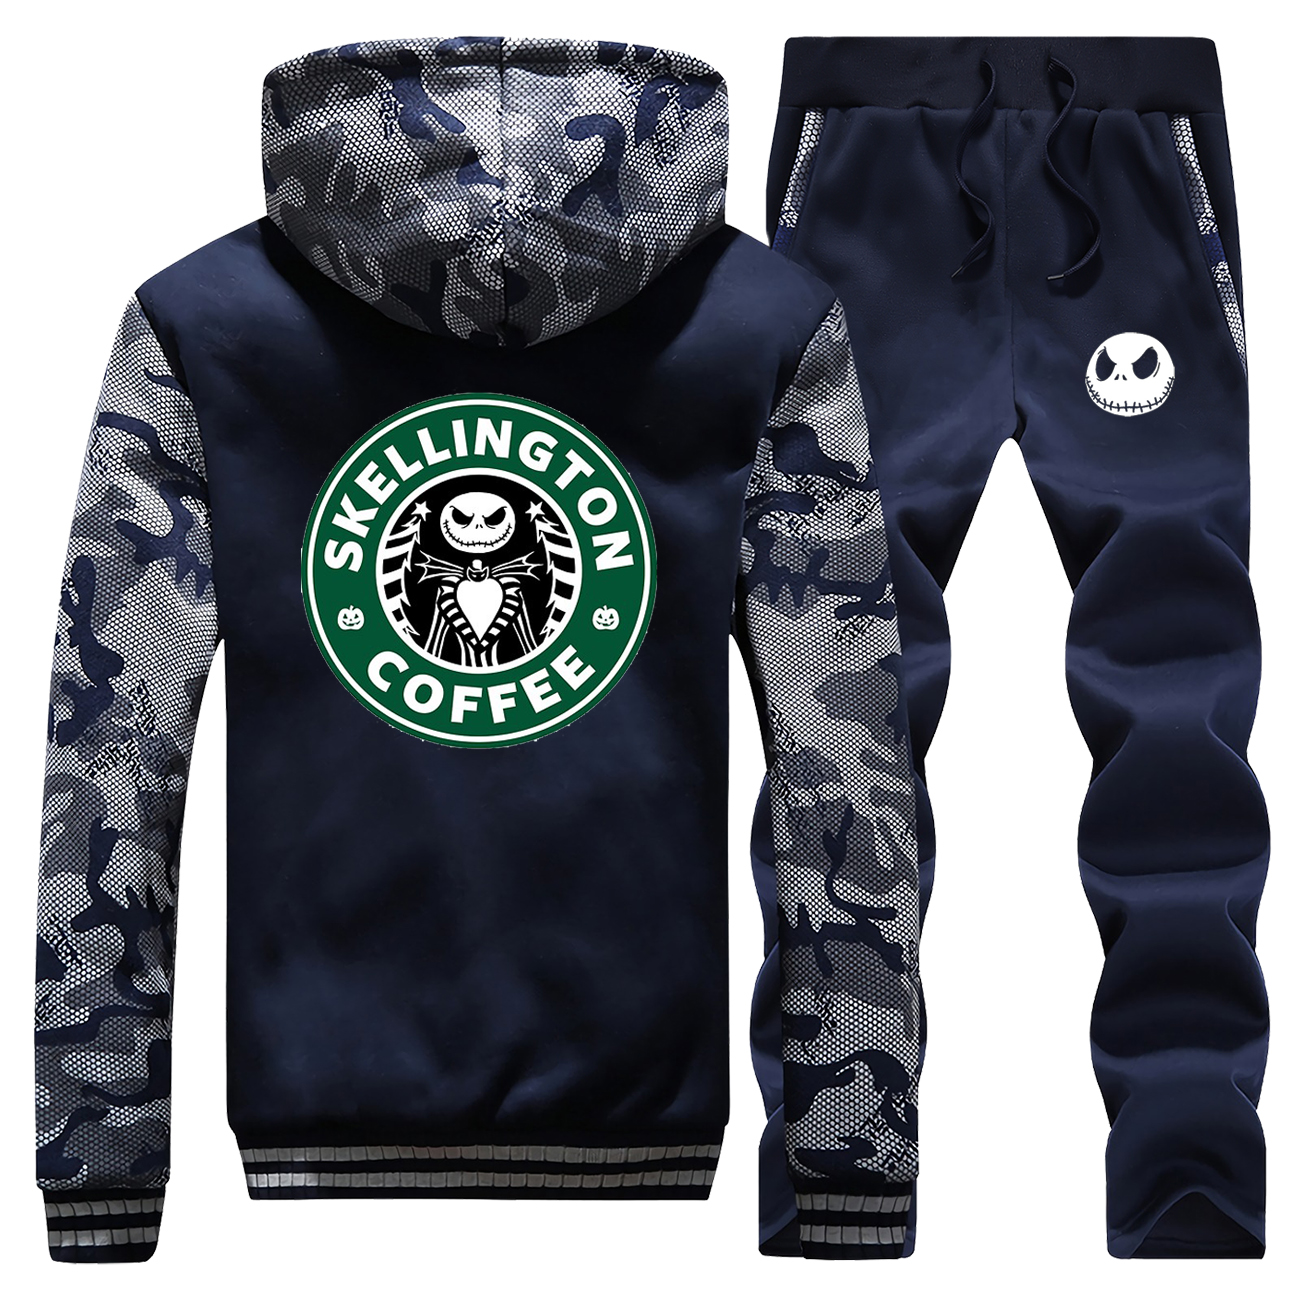 Winter New 2019 Jack Coffee The Nightmare Sportswear Warm Jackets Hoodie Mens Camouflage Suit Coat Thick+Sweatpants 2 Piece Set